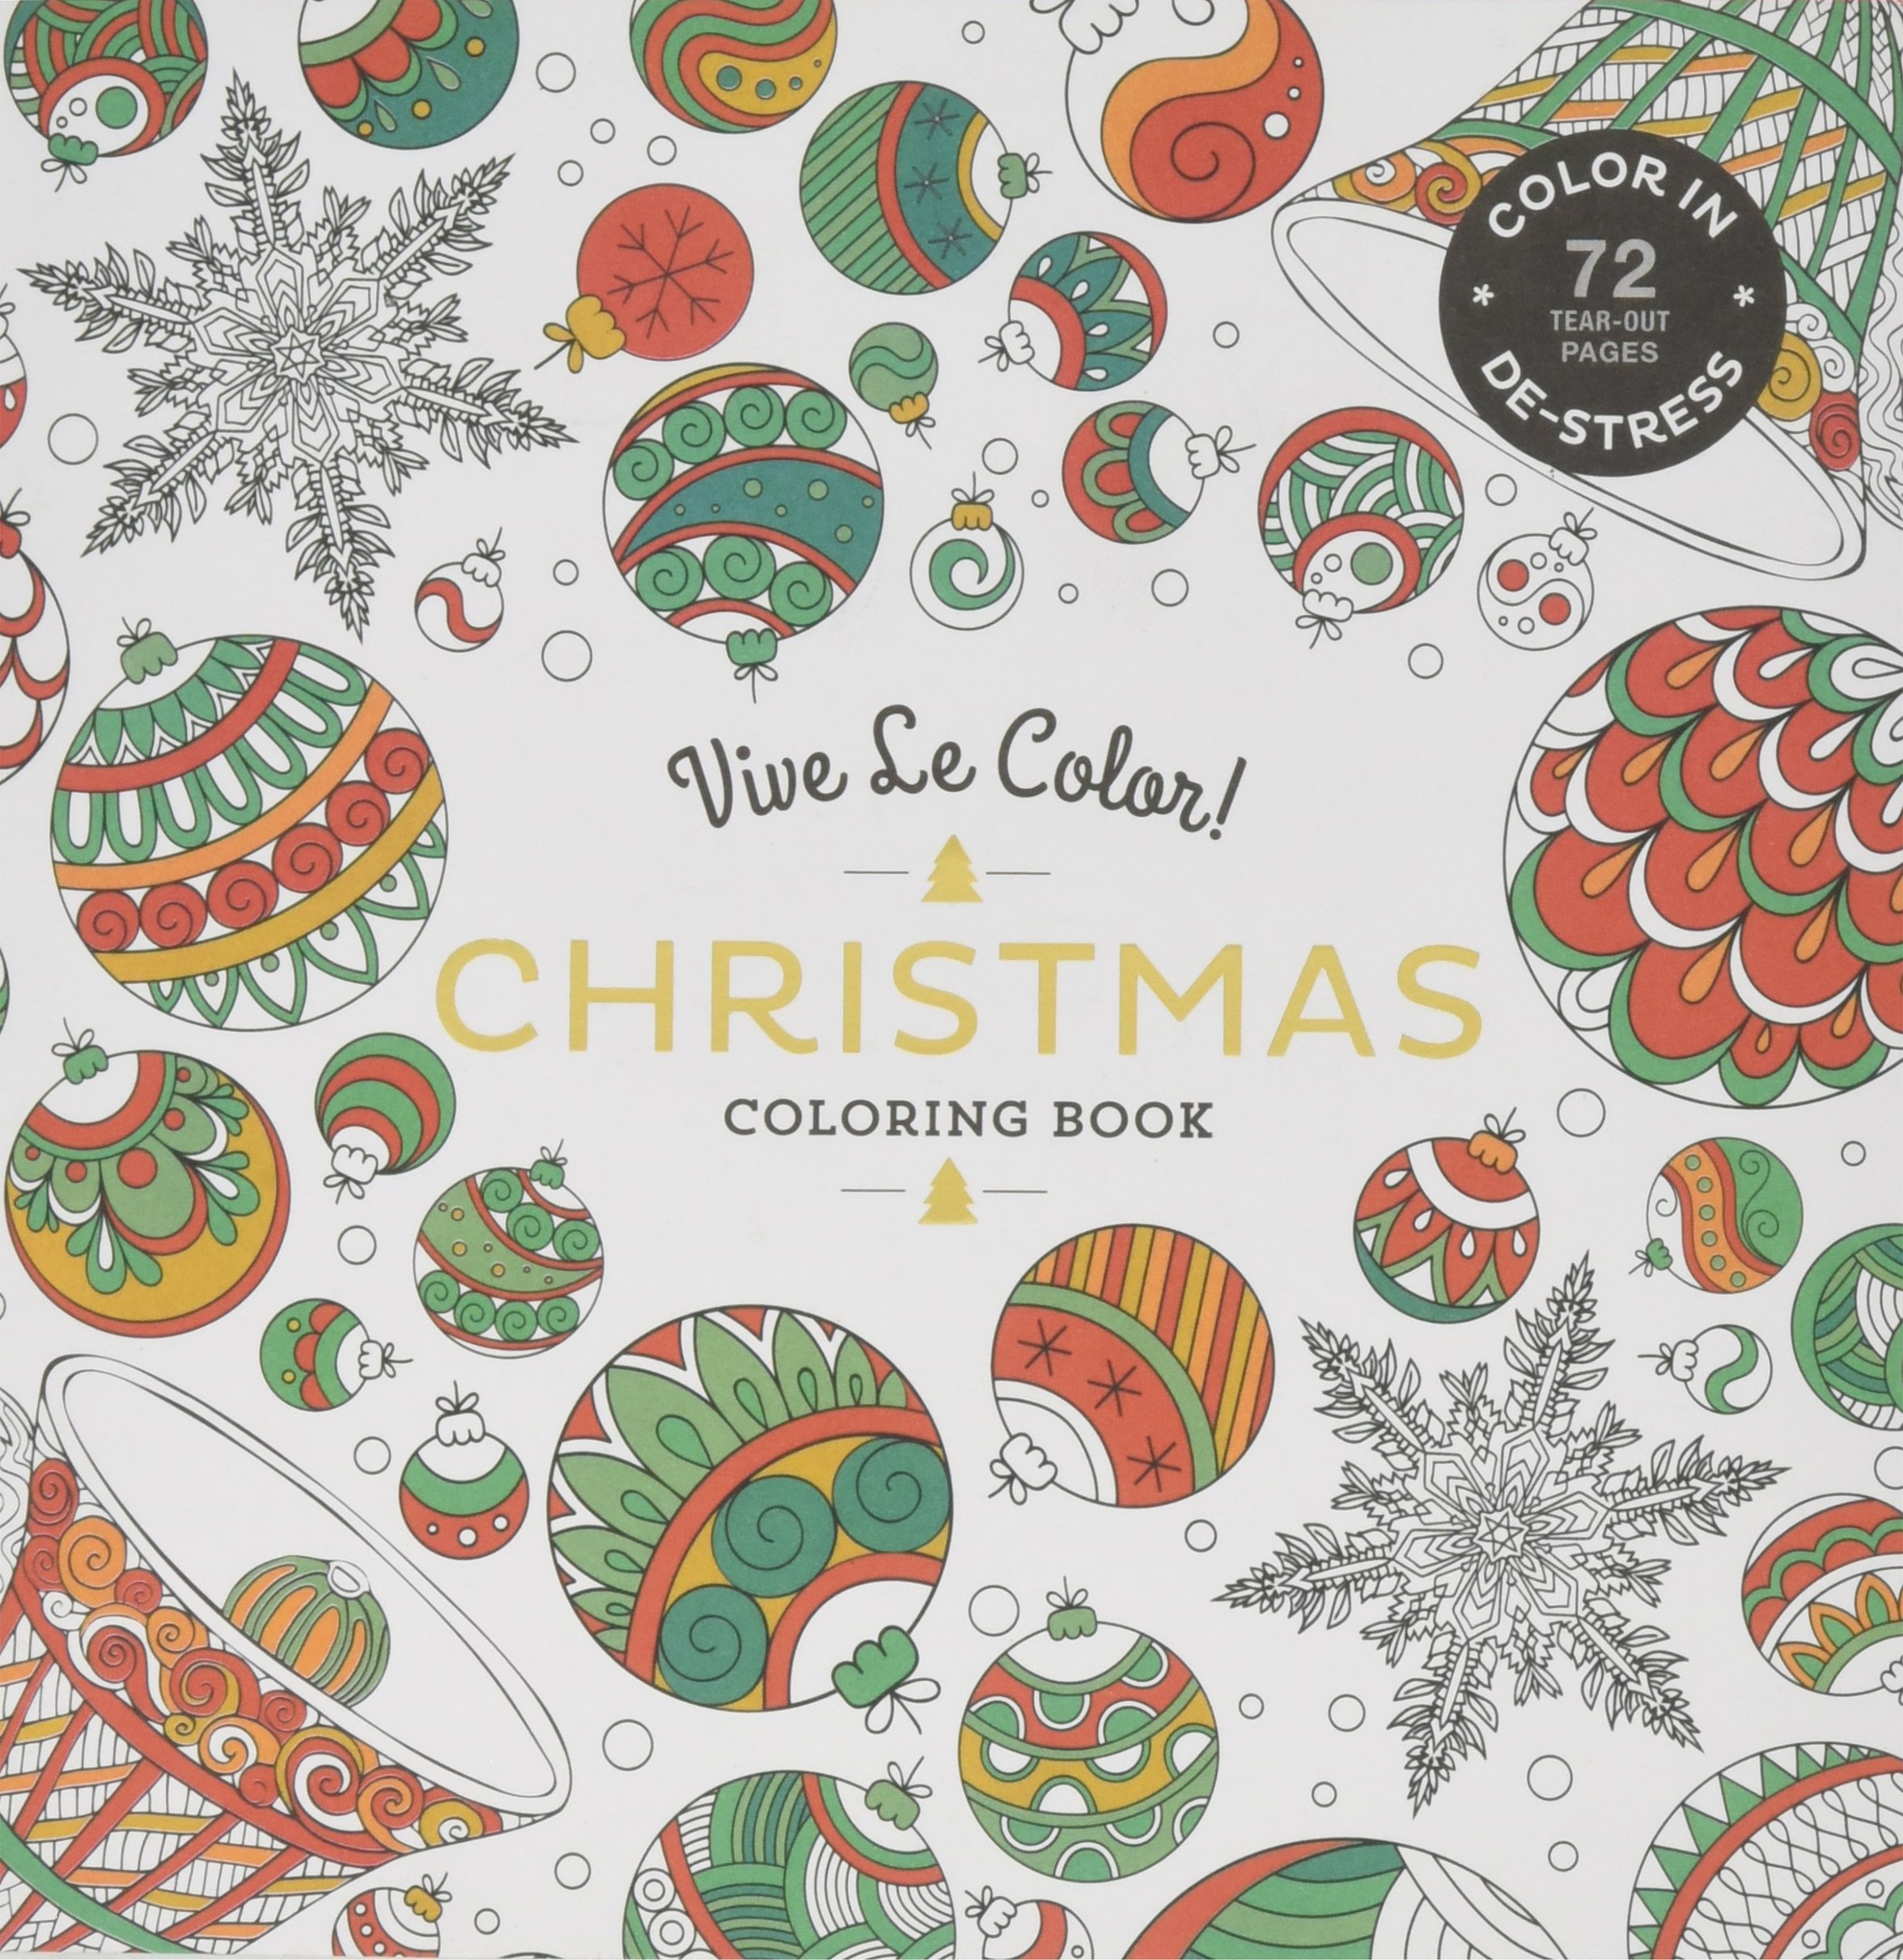 Download Vive Le Color! Christmas (Adult Coloring Book): Color In; De-stress (72 Tear-out Pages) ebook